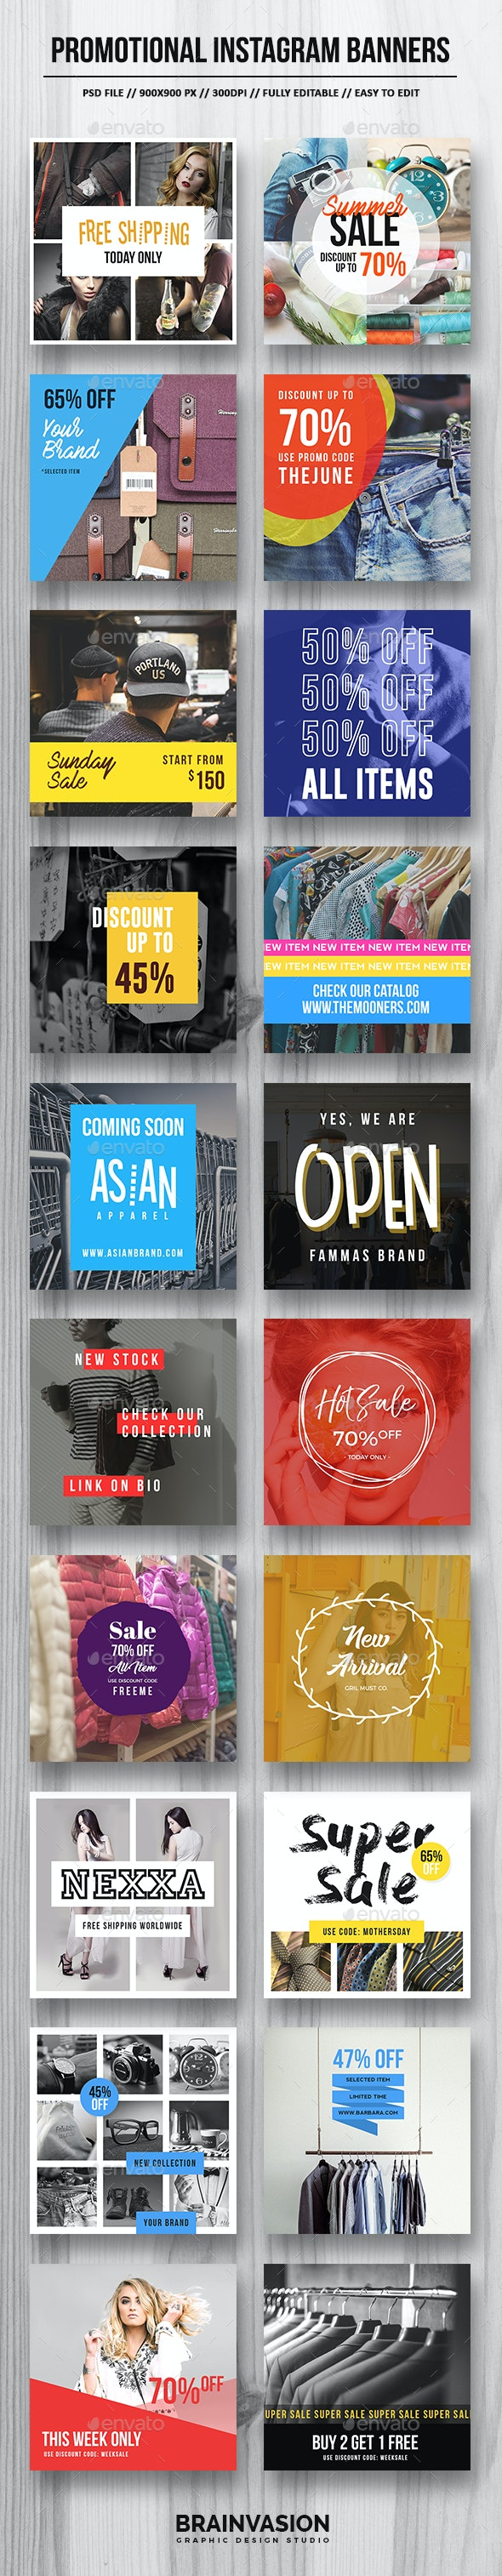 Promotional Instagram Banners - Miscellaneous Social Media